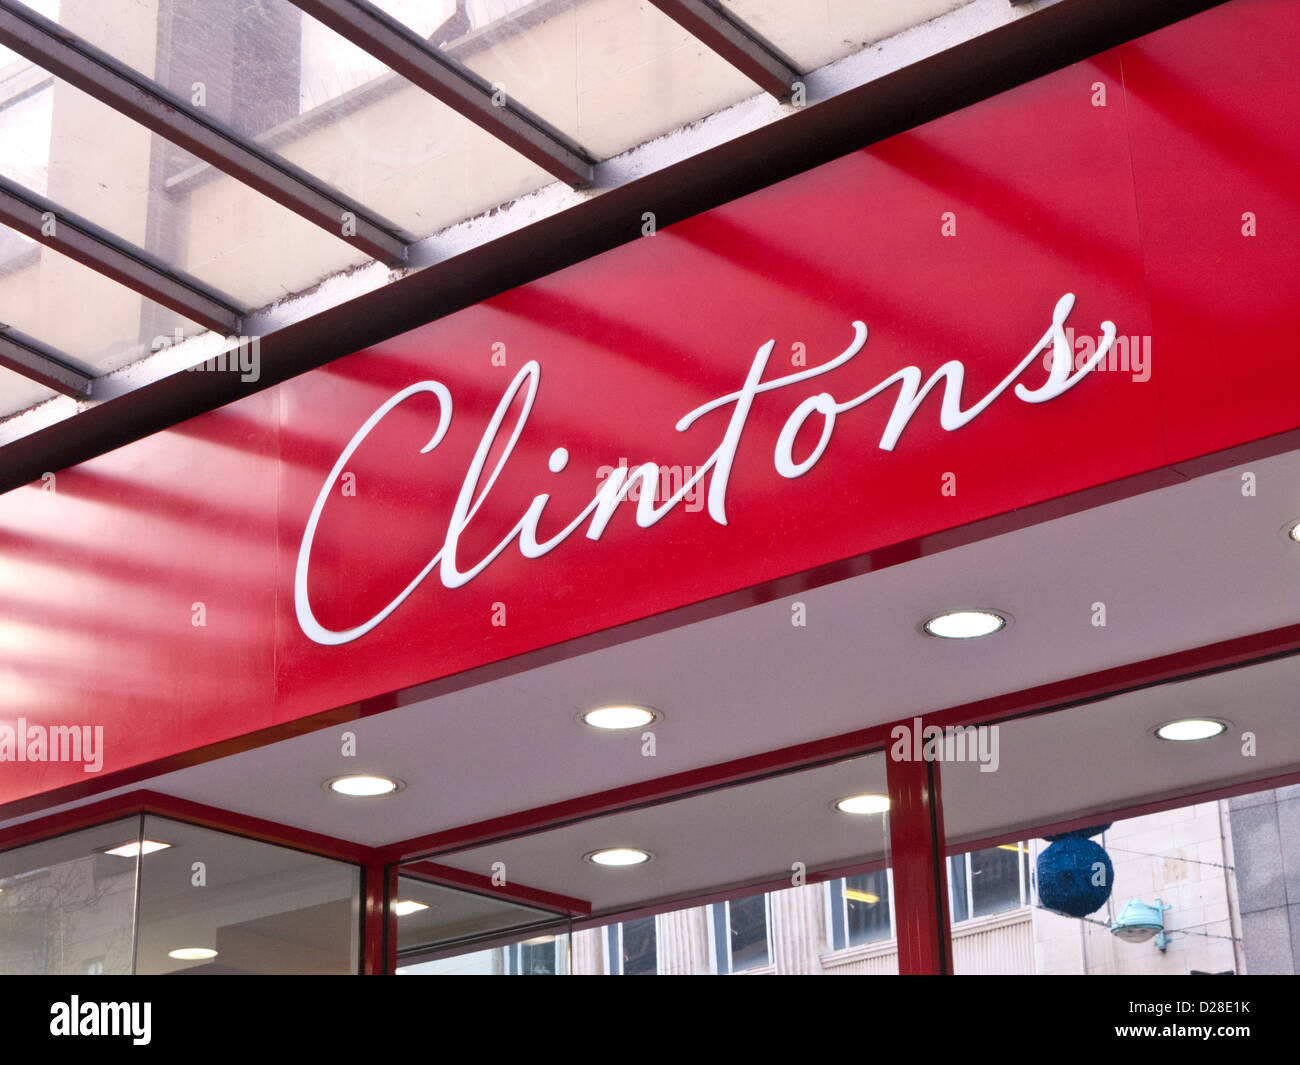 Clintons shop sign - Stock Image